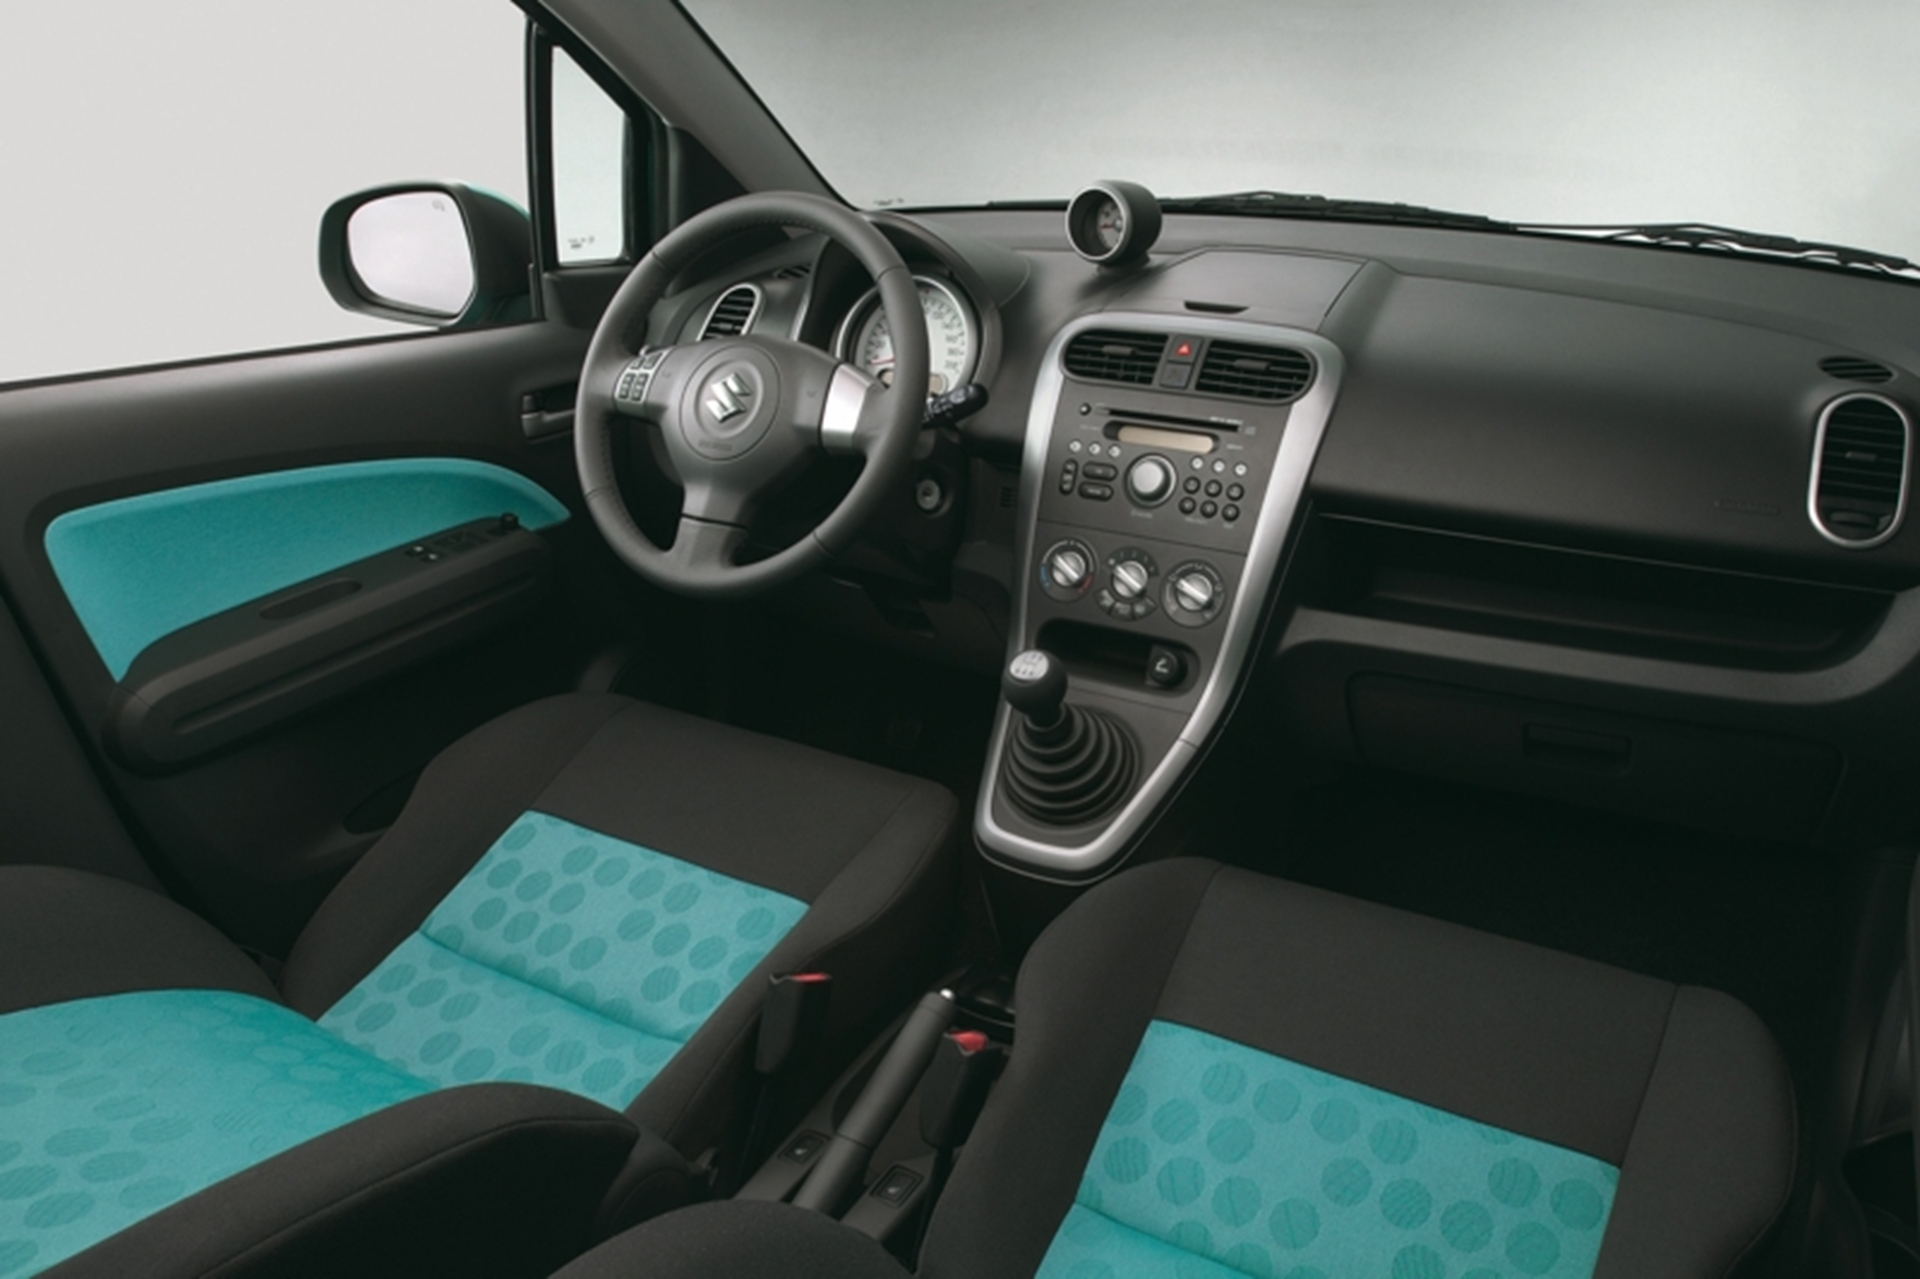 Suzuki Splash Inside View